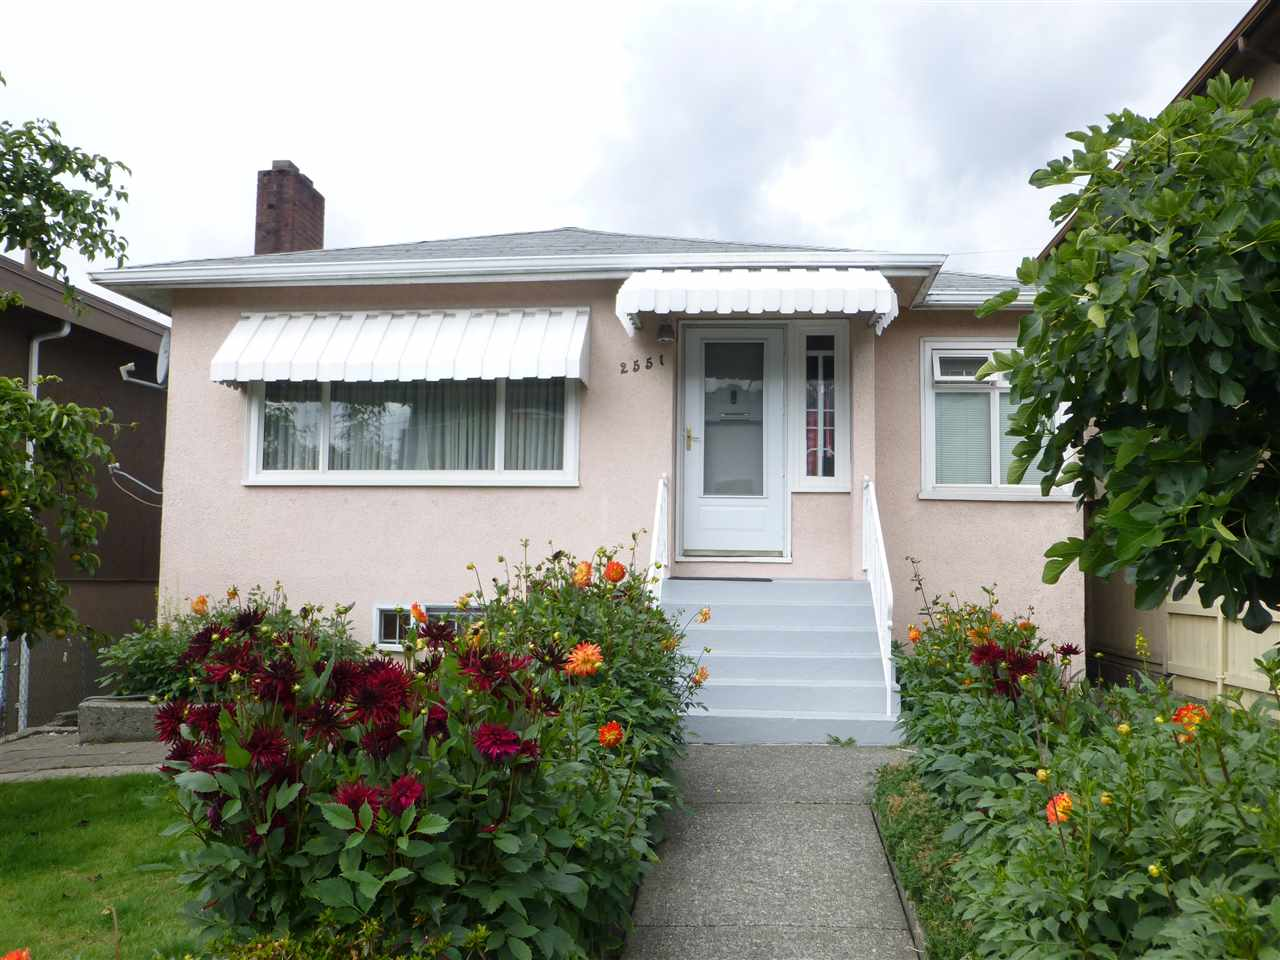 Main Photo: 2551 RENFREW Street in Vancouver: Renfrew VE House for sale (Vancouver East)  : MLS® # R2092376